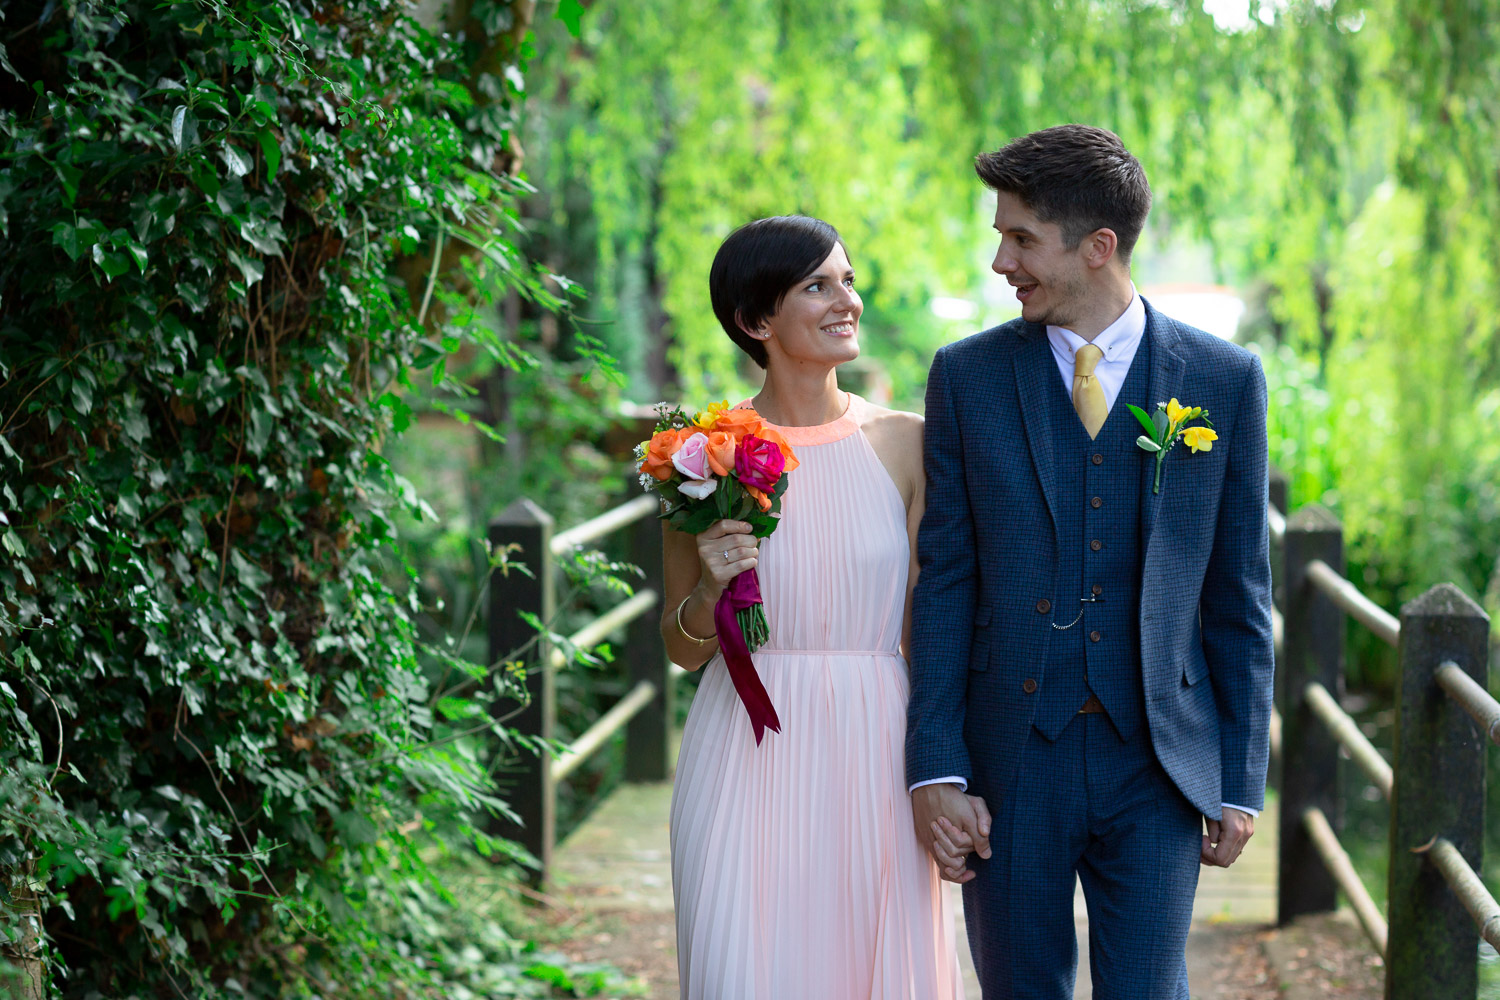 Wedding emotions love bride and groom natural portraits